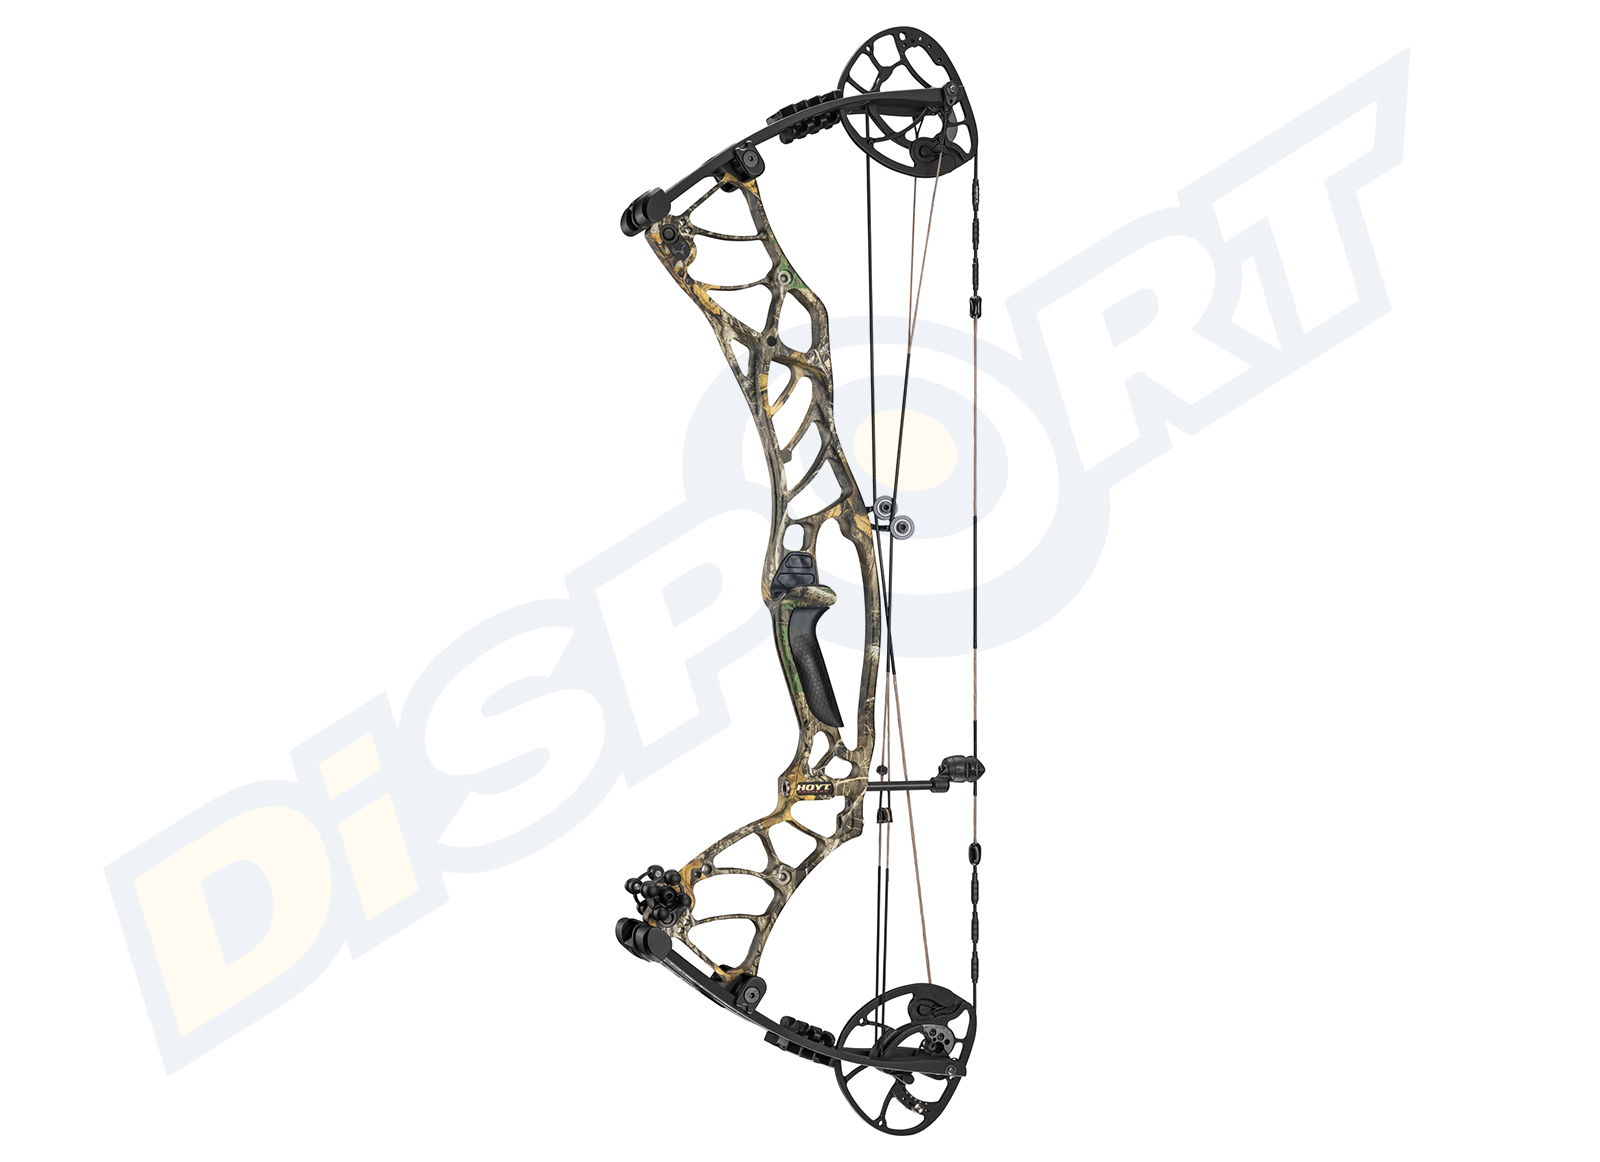 HOYT COMPOUND HELIX TURBO 2020